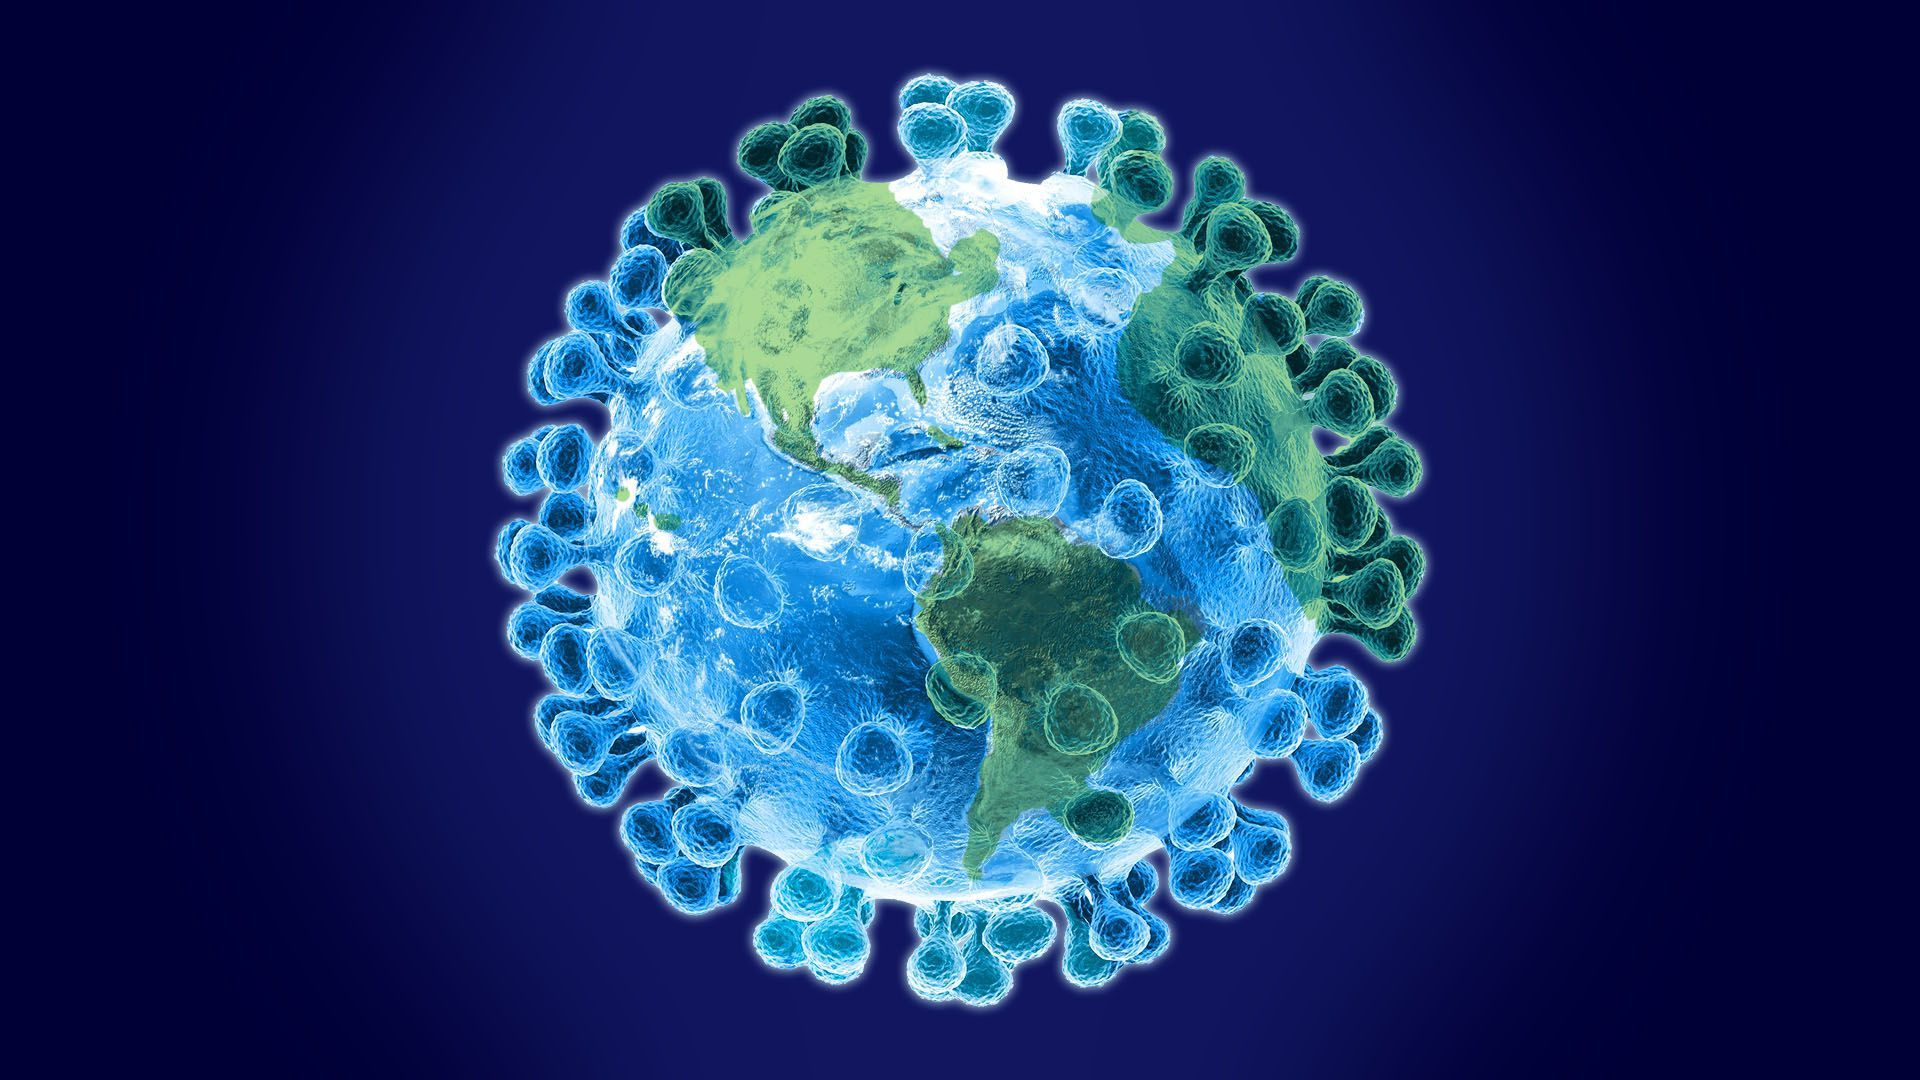 Coronavirus Pandemic Wallpapers   Top Coronavirus Pandemic 1920x1080